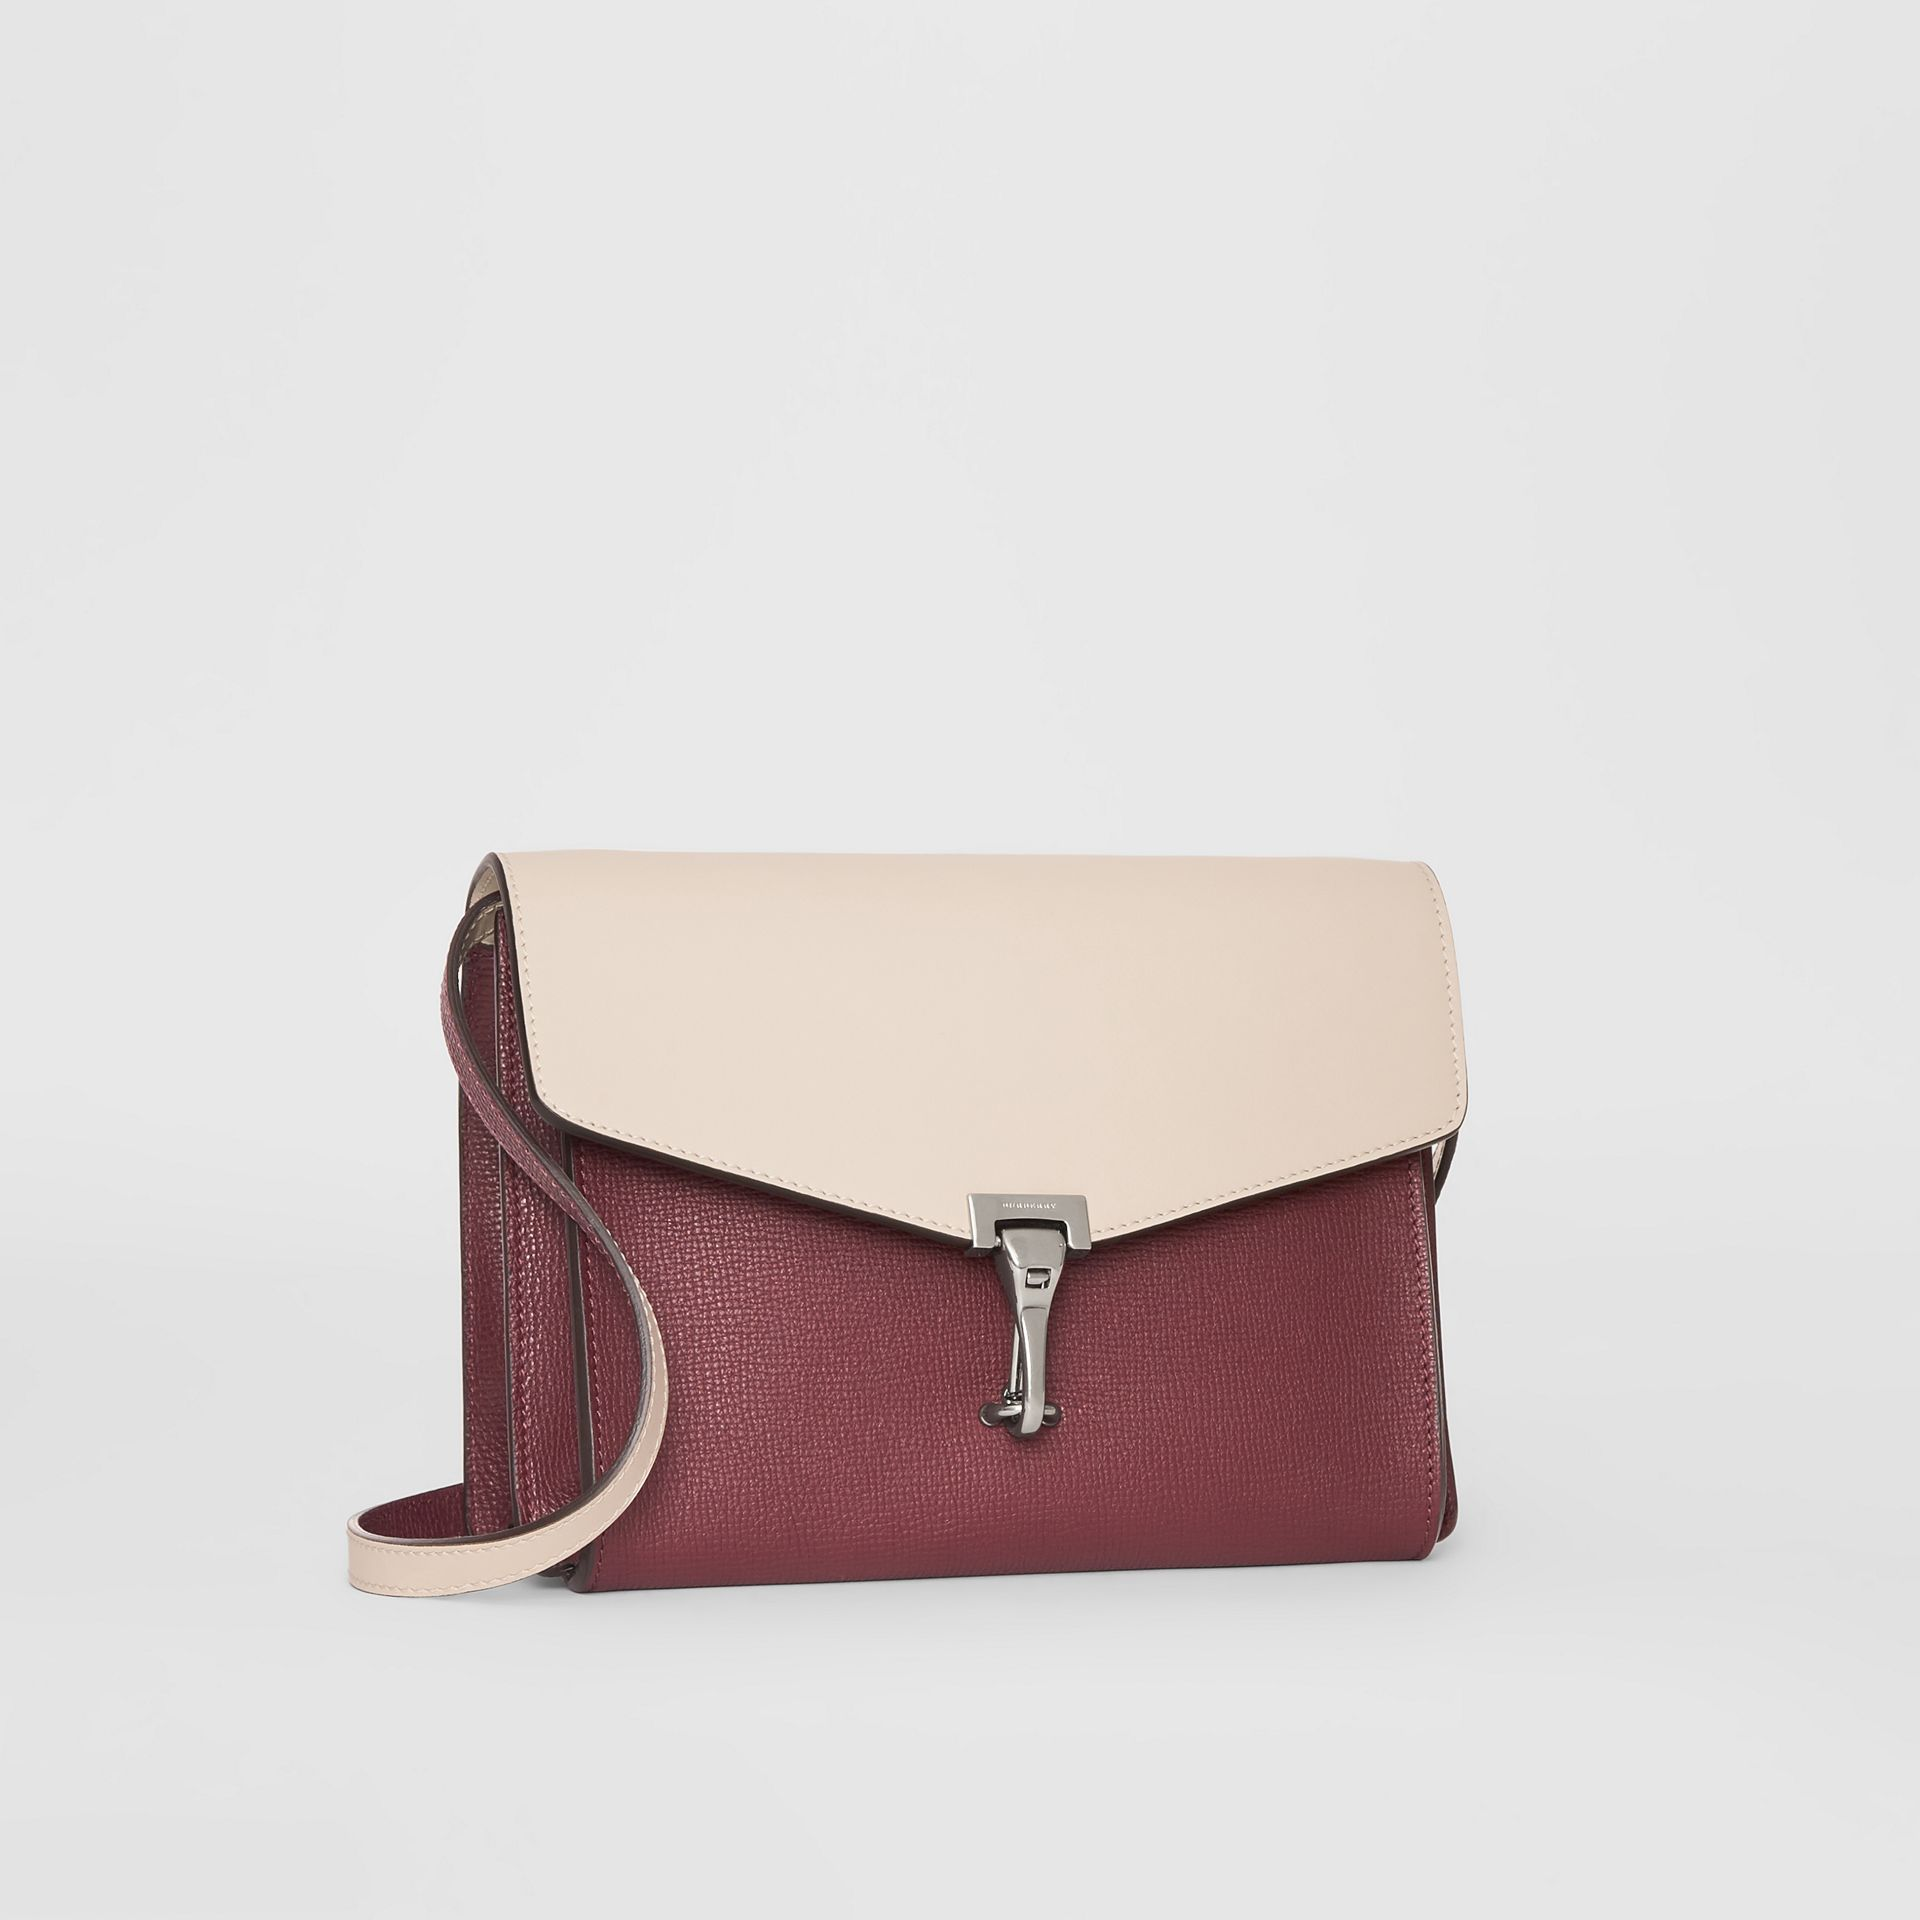 Two-tone Leather Crossbody Bag in Mahogany Red/limestone - Women | Burberry United States - gallery image 6